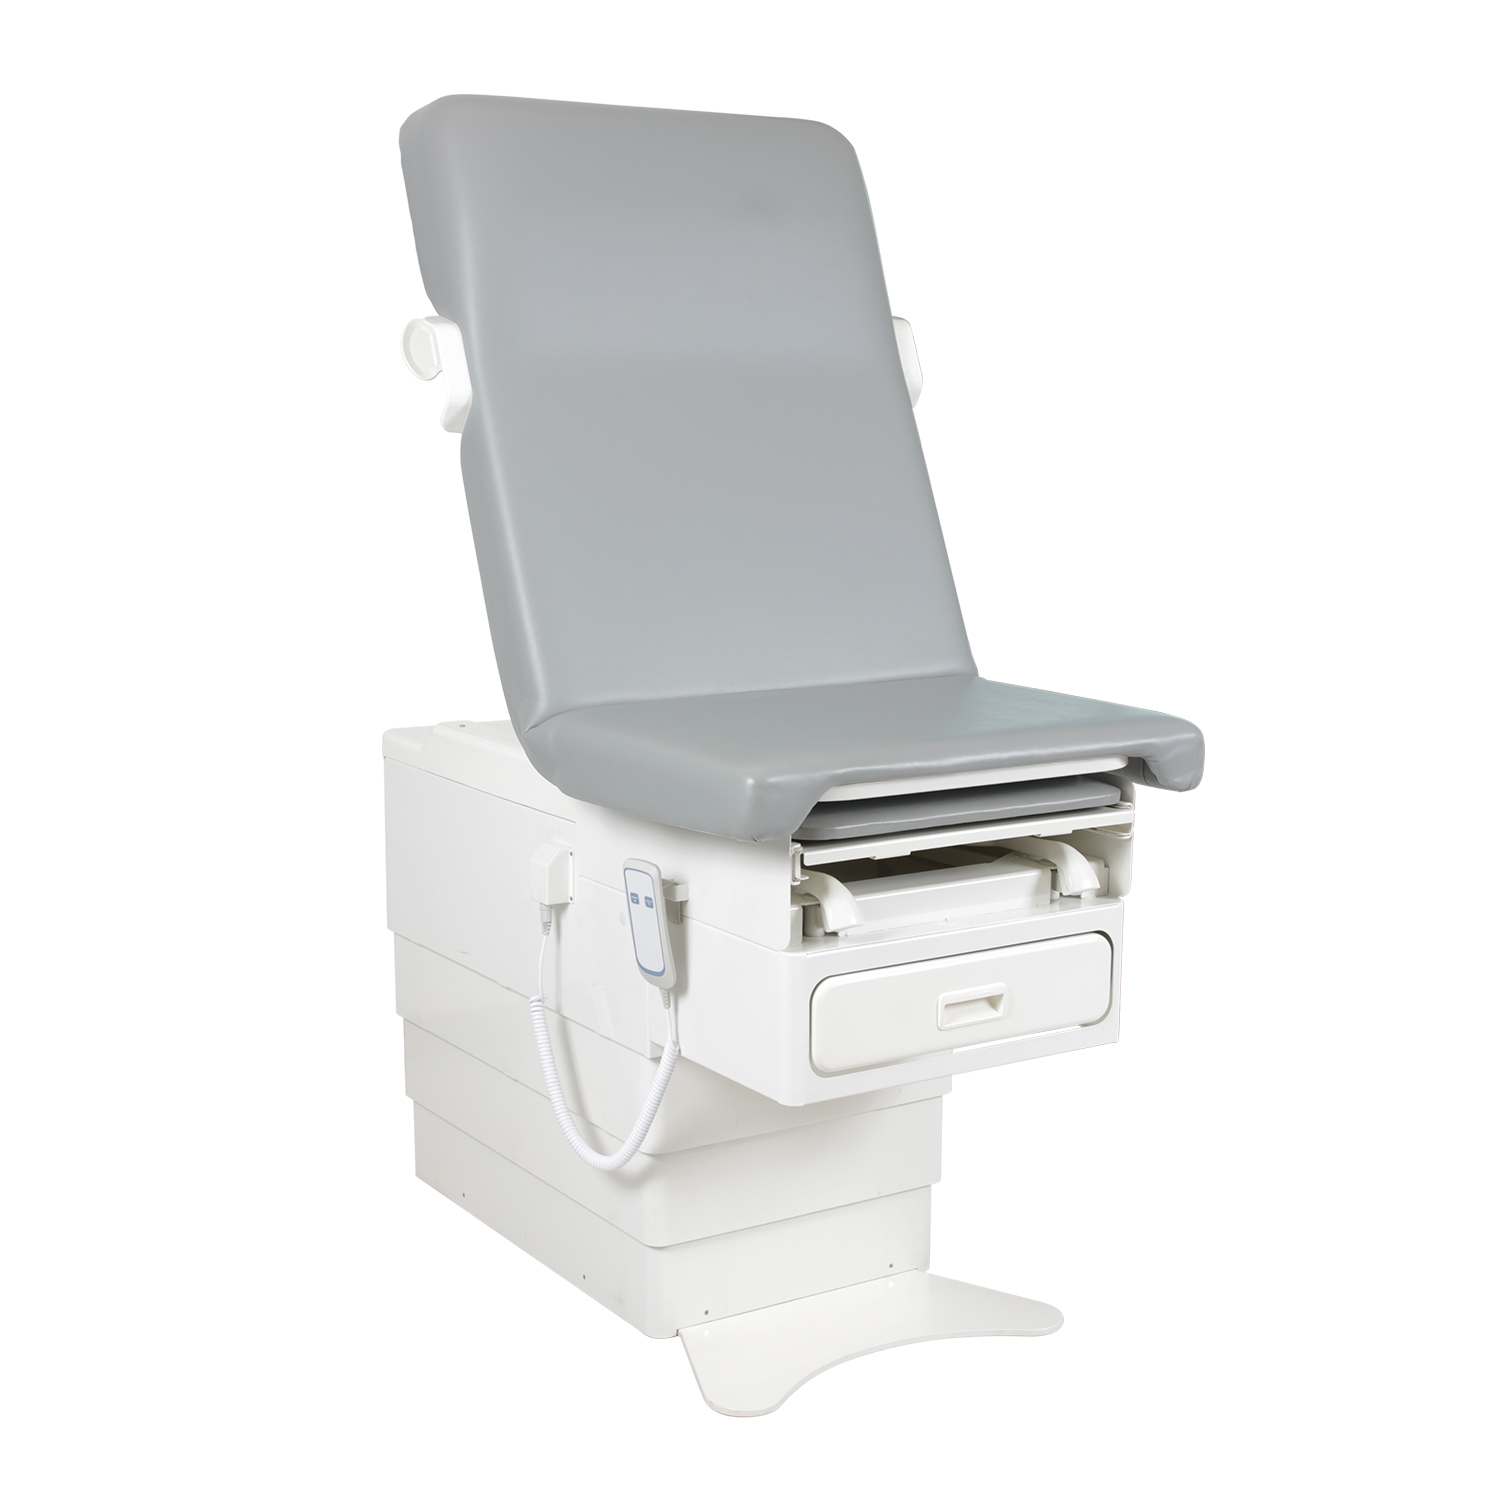 DRE Meridian Power Exam Table